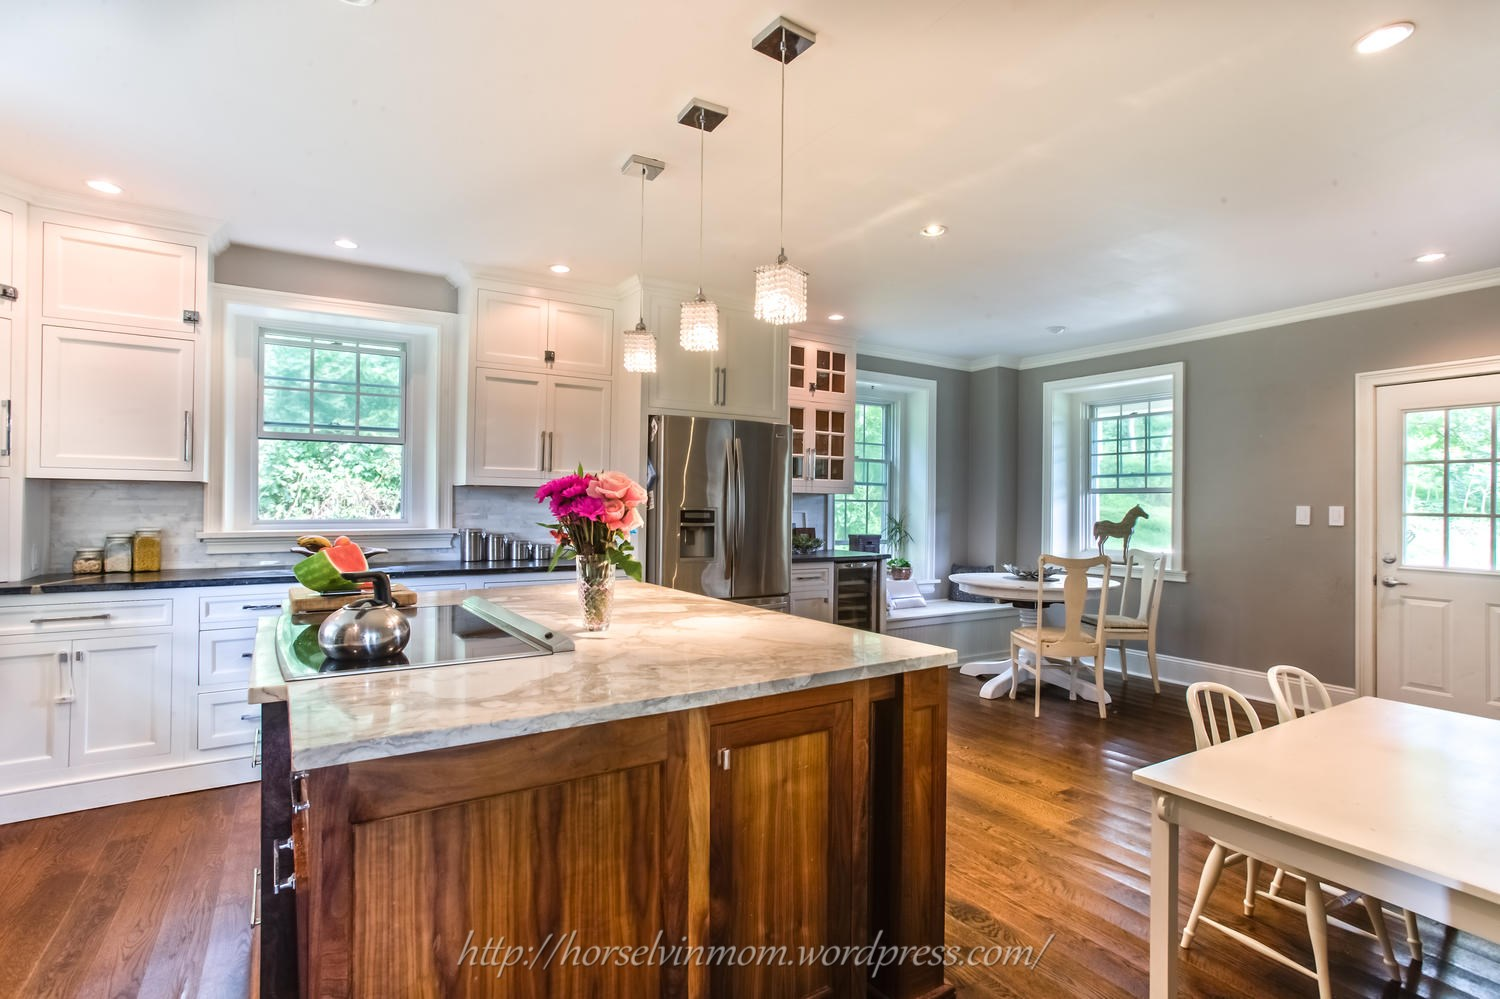 Remodelaholic | White Country Kitchen Remodel with Marble ...